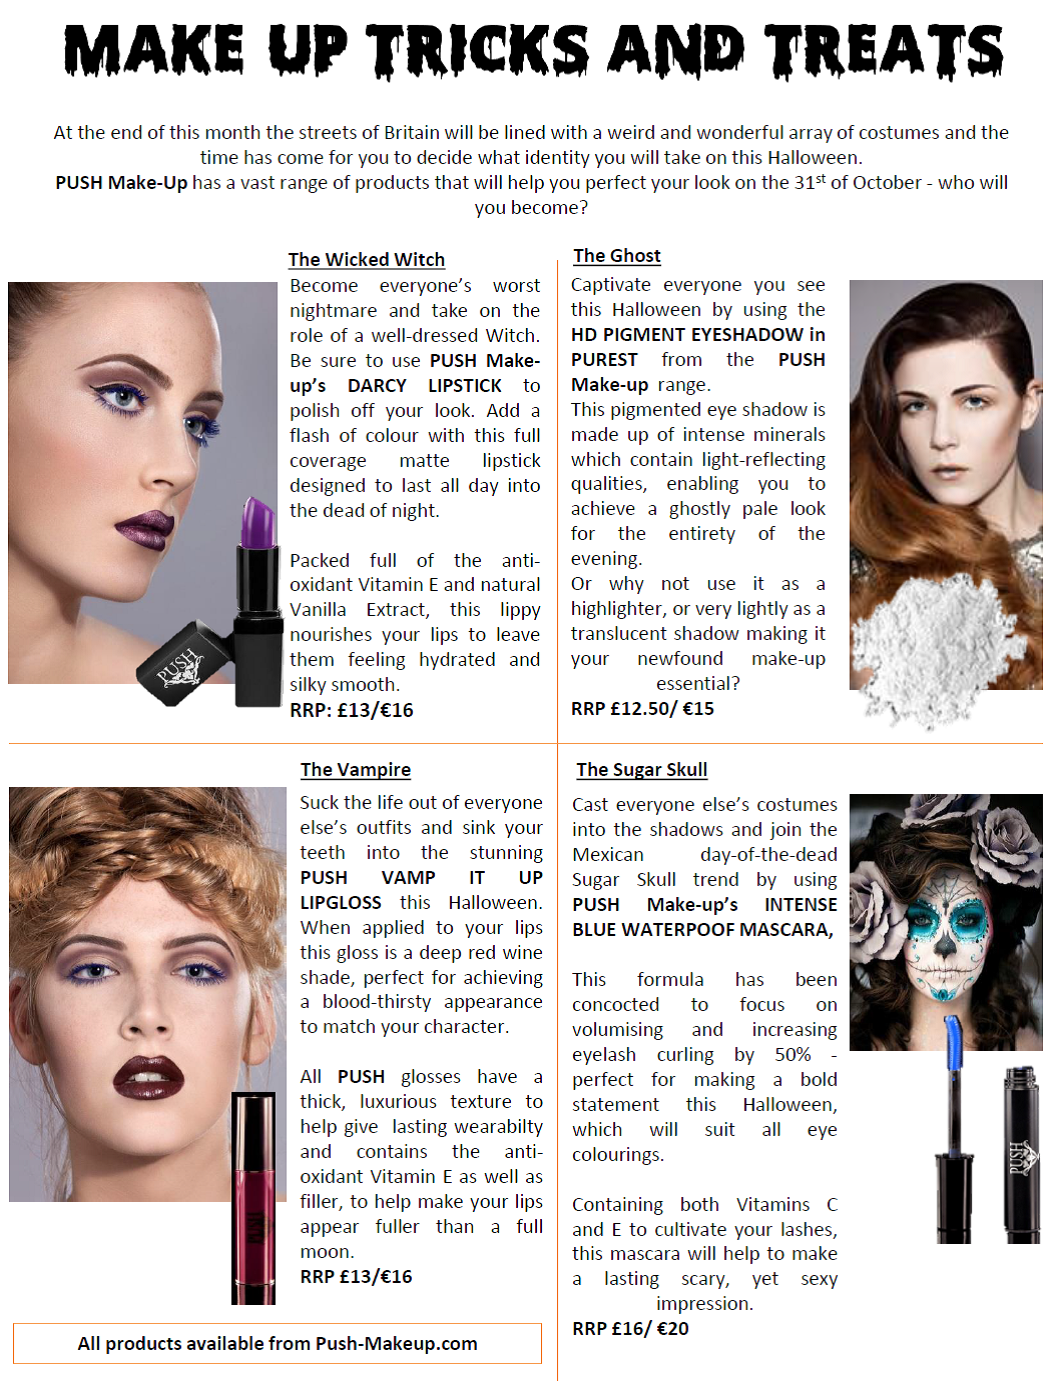 halloween make up tips and tricks from push make up freak deluxe